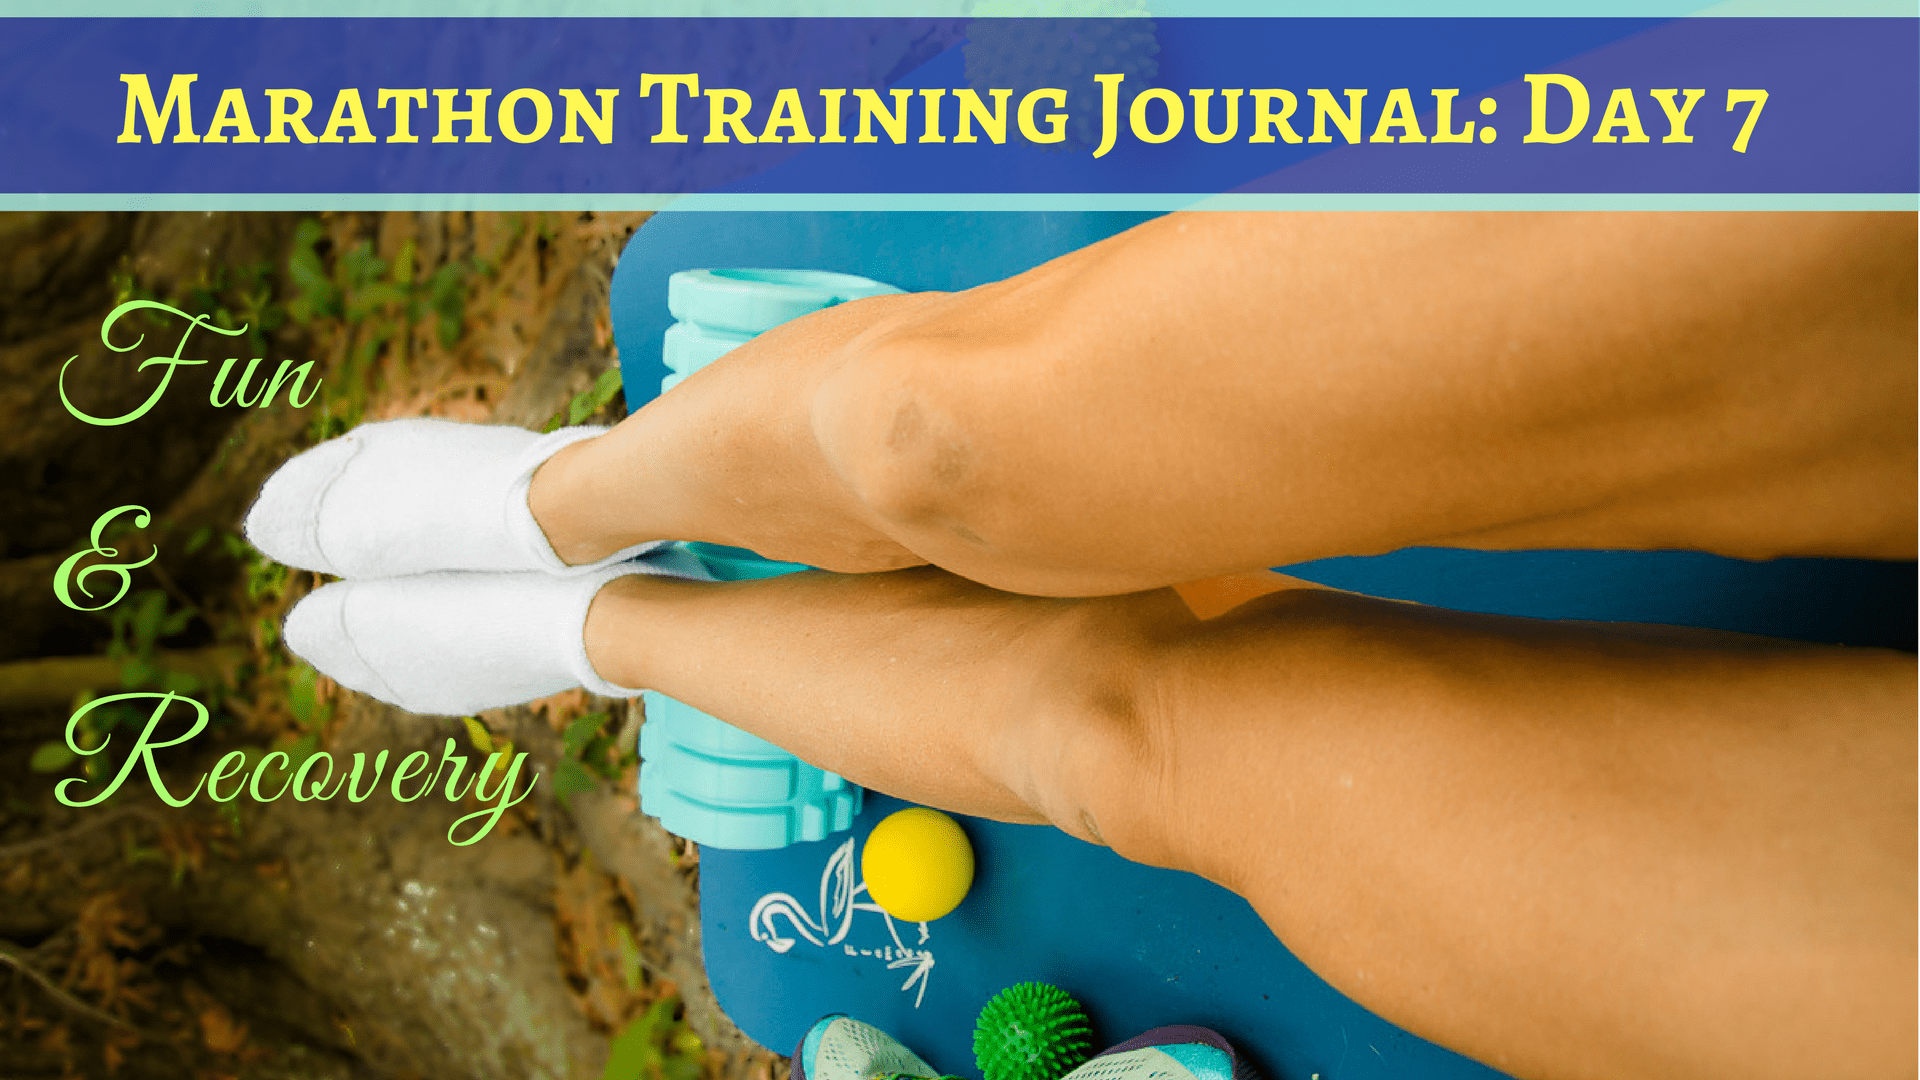 Marathon Training Journal- Day 7